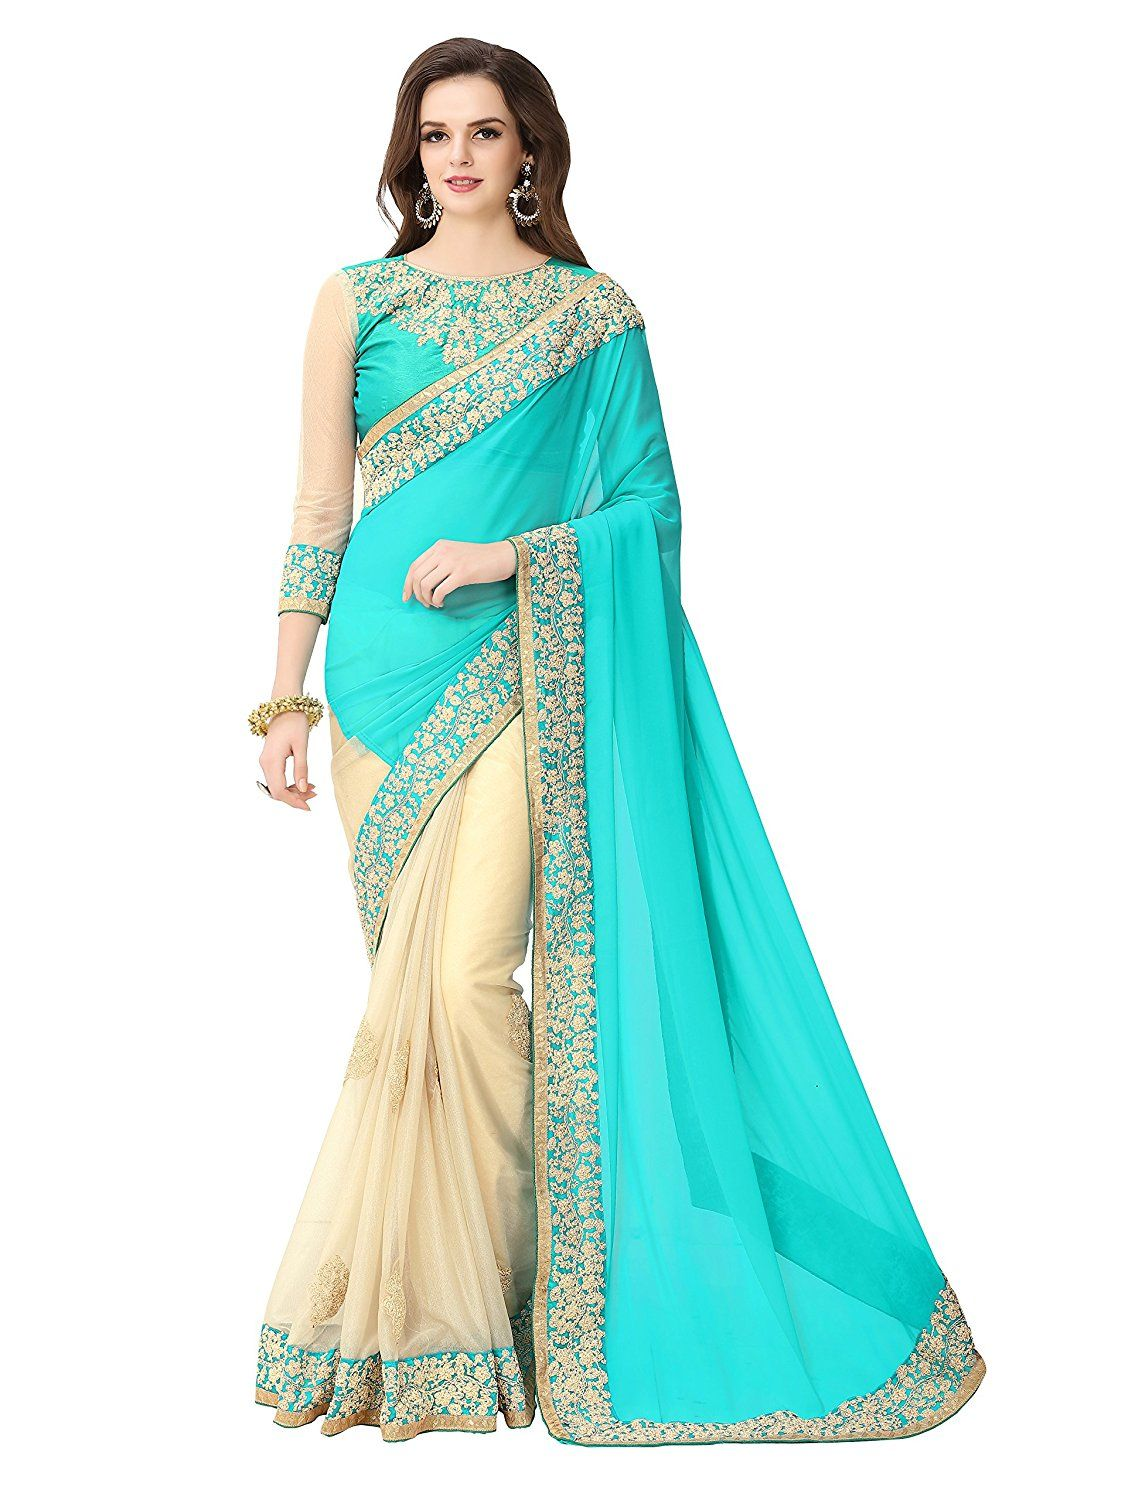 f7368e6c2e102c Glory Sarees Georgette Saree (Sukanya Blue Saree Blue And Beige)  Amazon.in   Clothing   Accessories